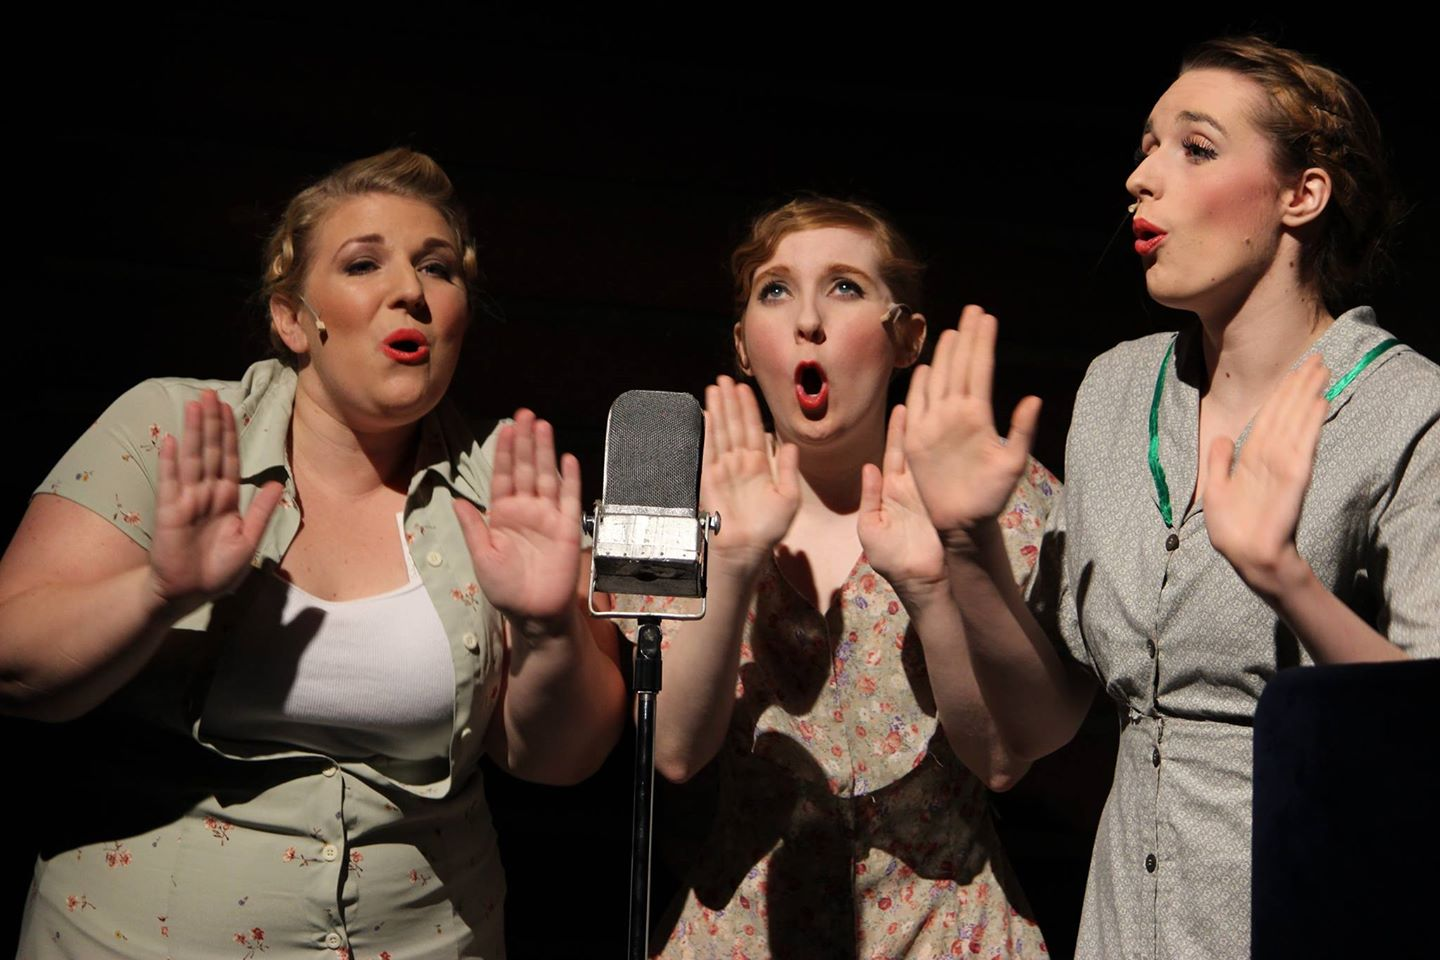 Theater Works. 2014. National Pastime. The Jingle Girls. Photo by Brett Aiken.